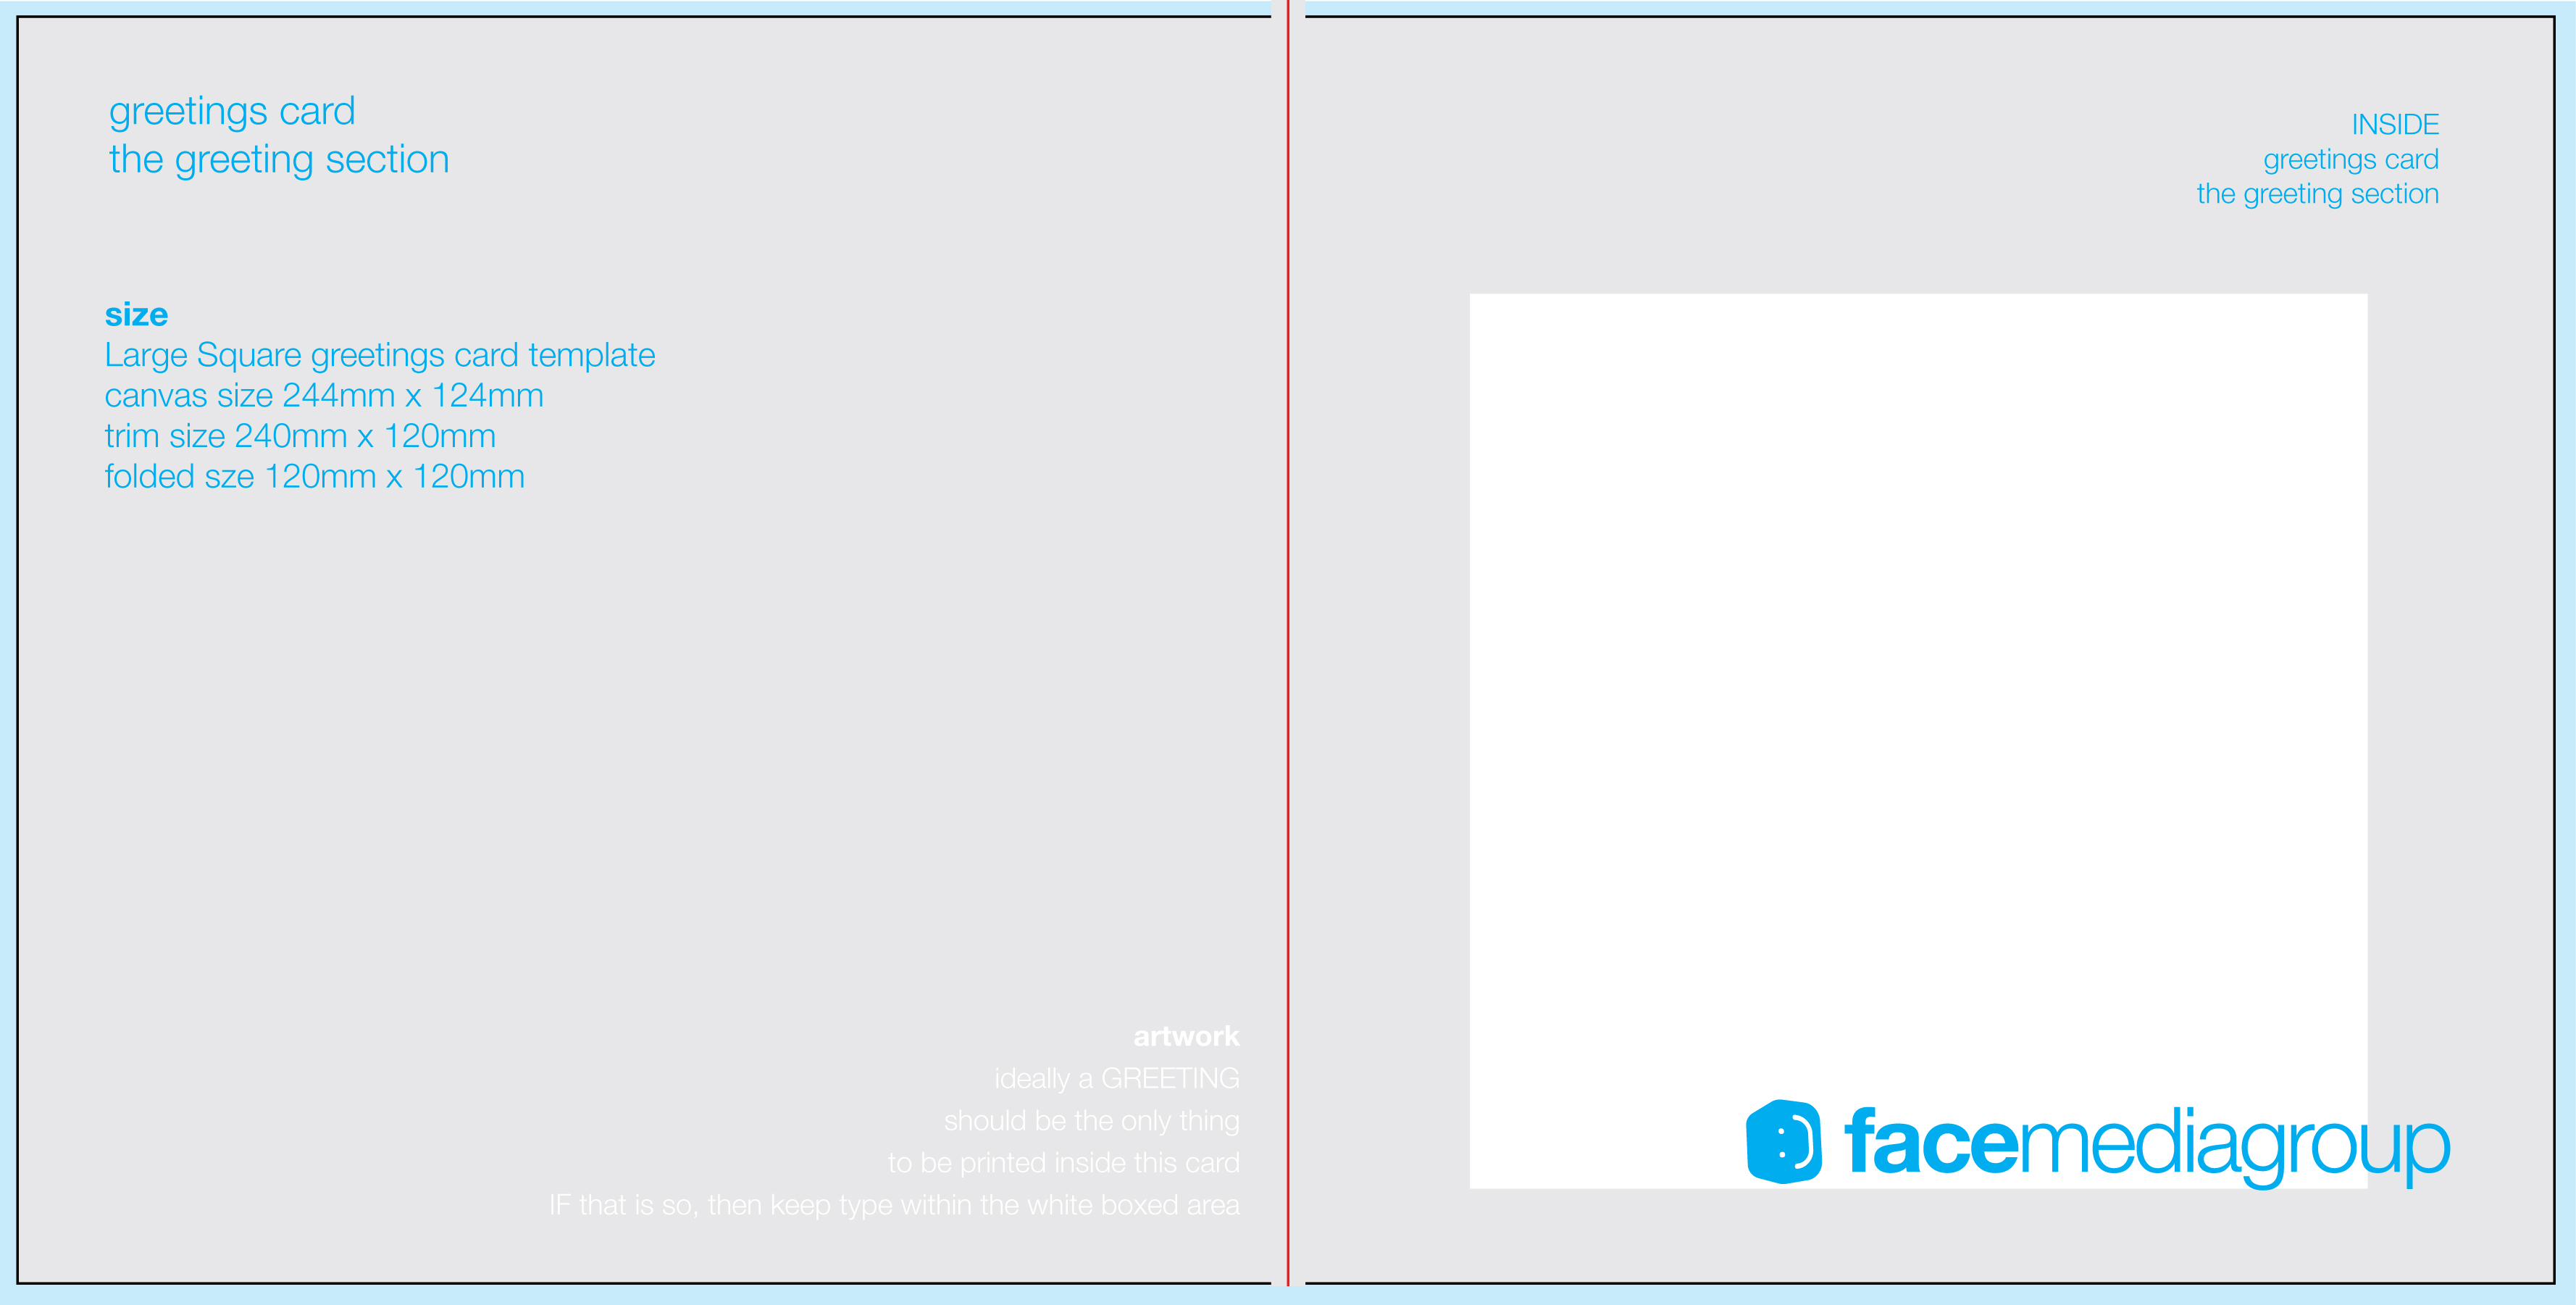 free blank greetings card artwork templates for download | face